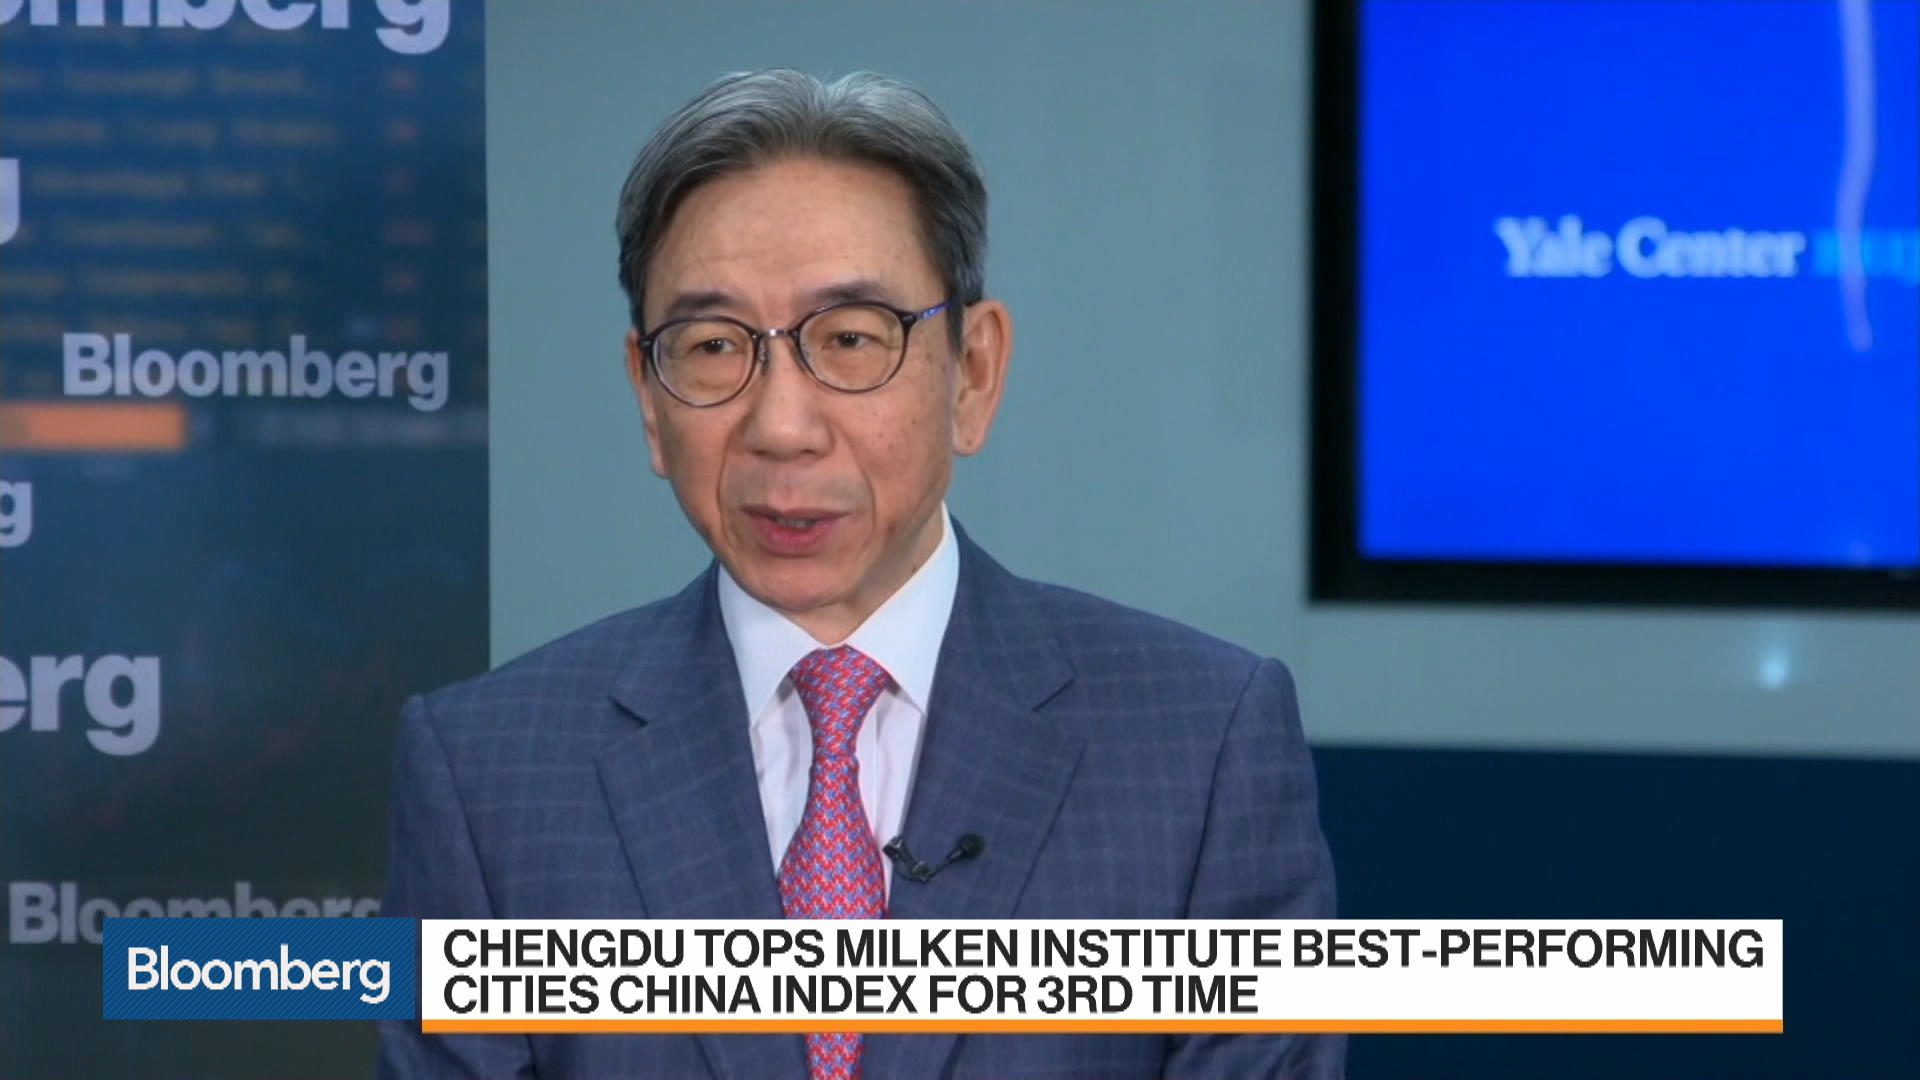 Perry Wong, managing director at Milken Institute, on China's 'best-performing' cities